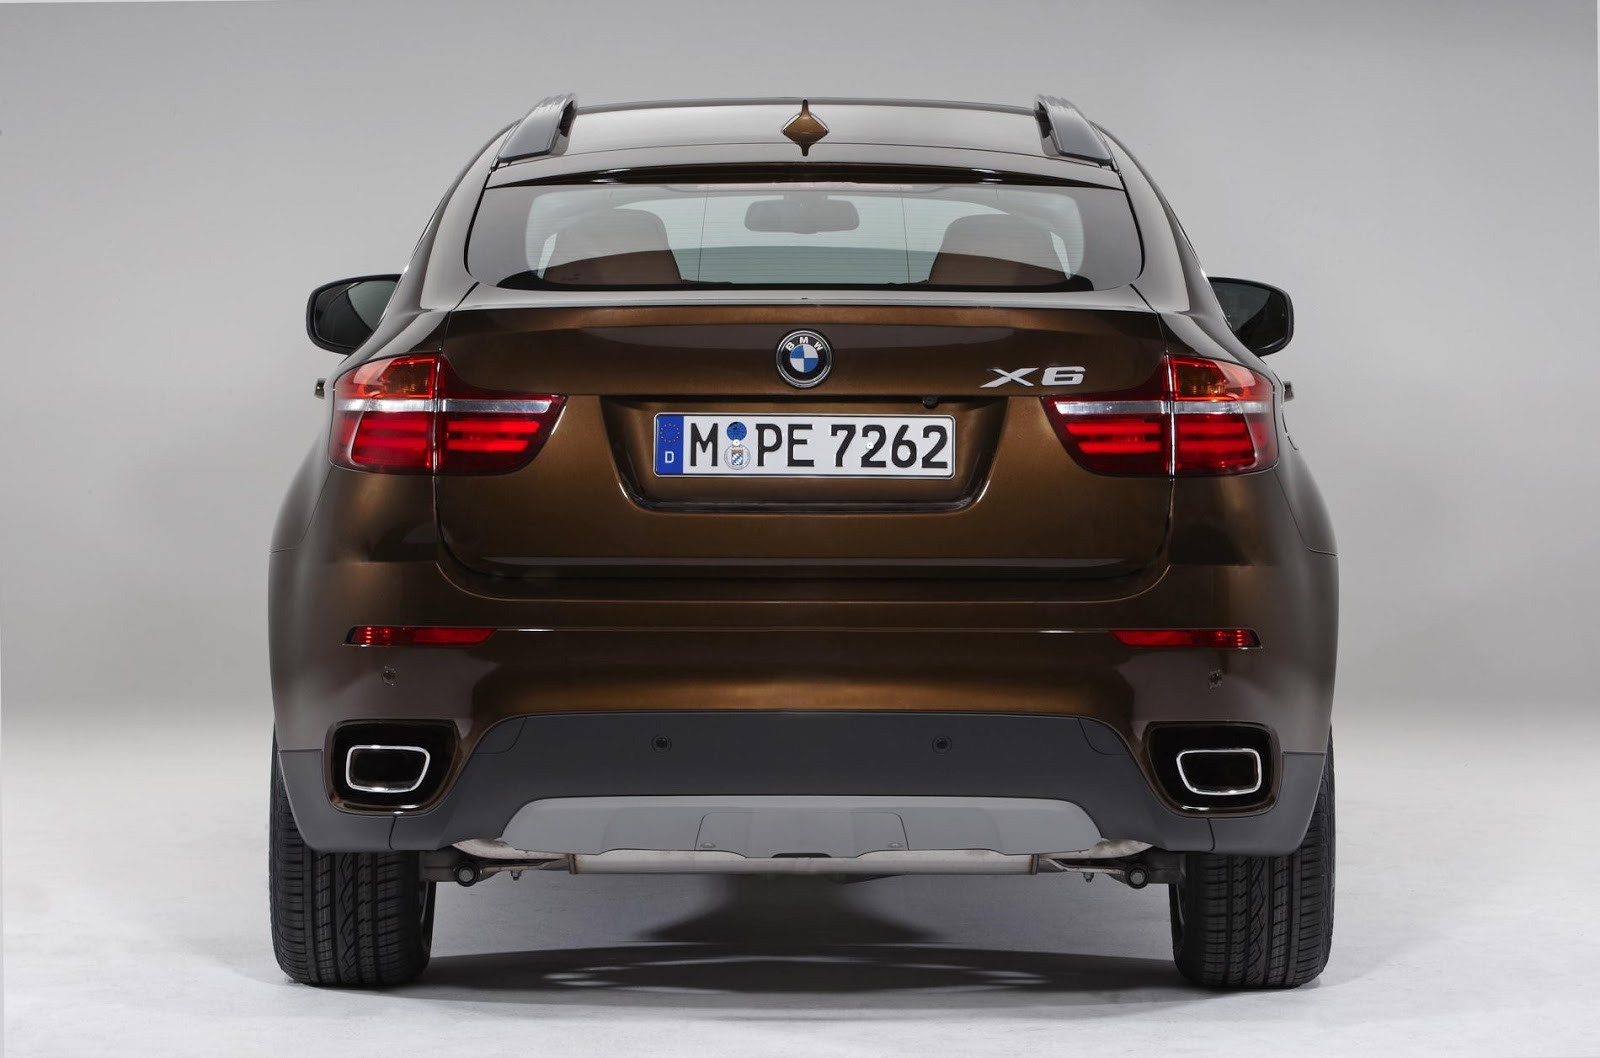 The bmw x6 is a mid sized luxury crossover released for sale in the late 2008 for the 2009 model year by german automaker bmw